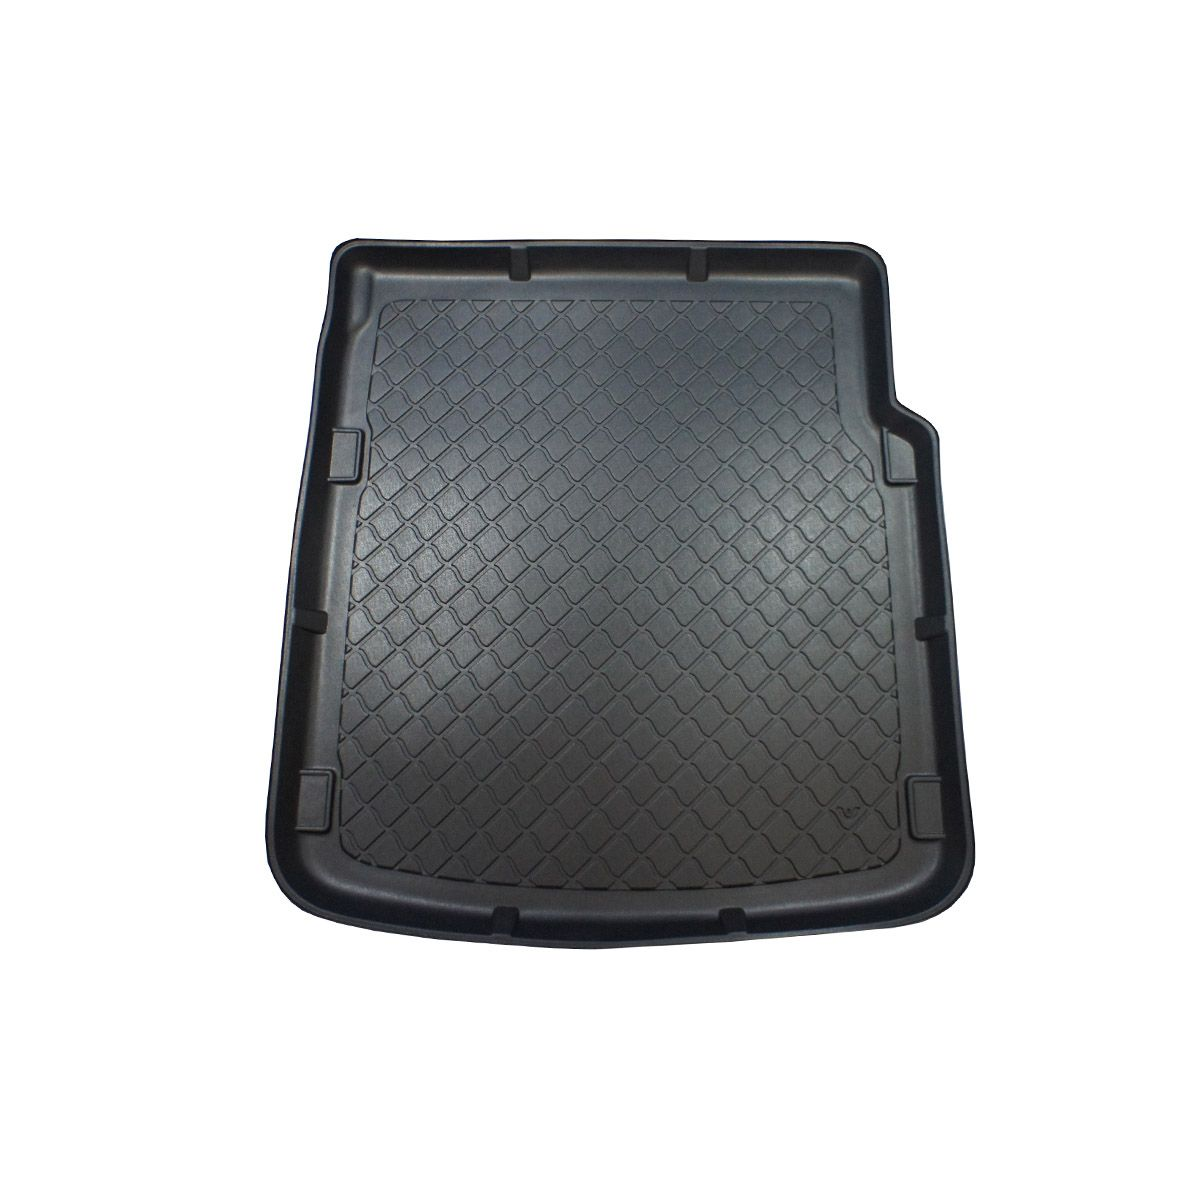 Audi A7 / S7 / RS7 Sportback 2010 - 2018 (MK1) Moulded Boot Mat product image